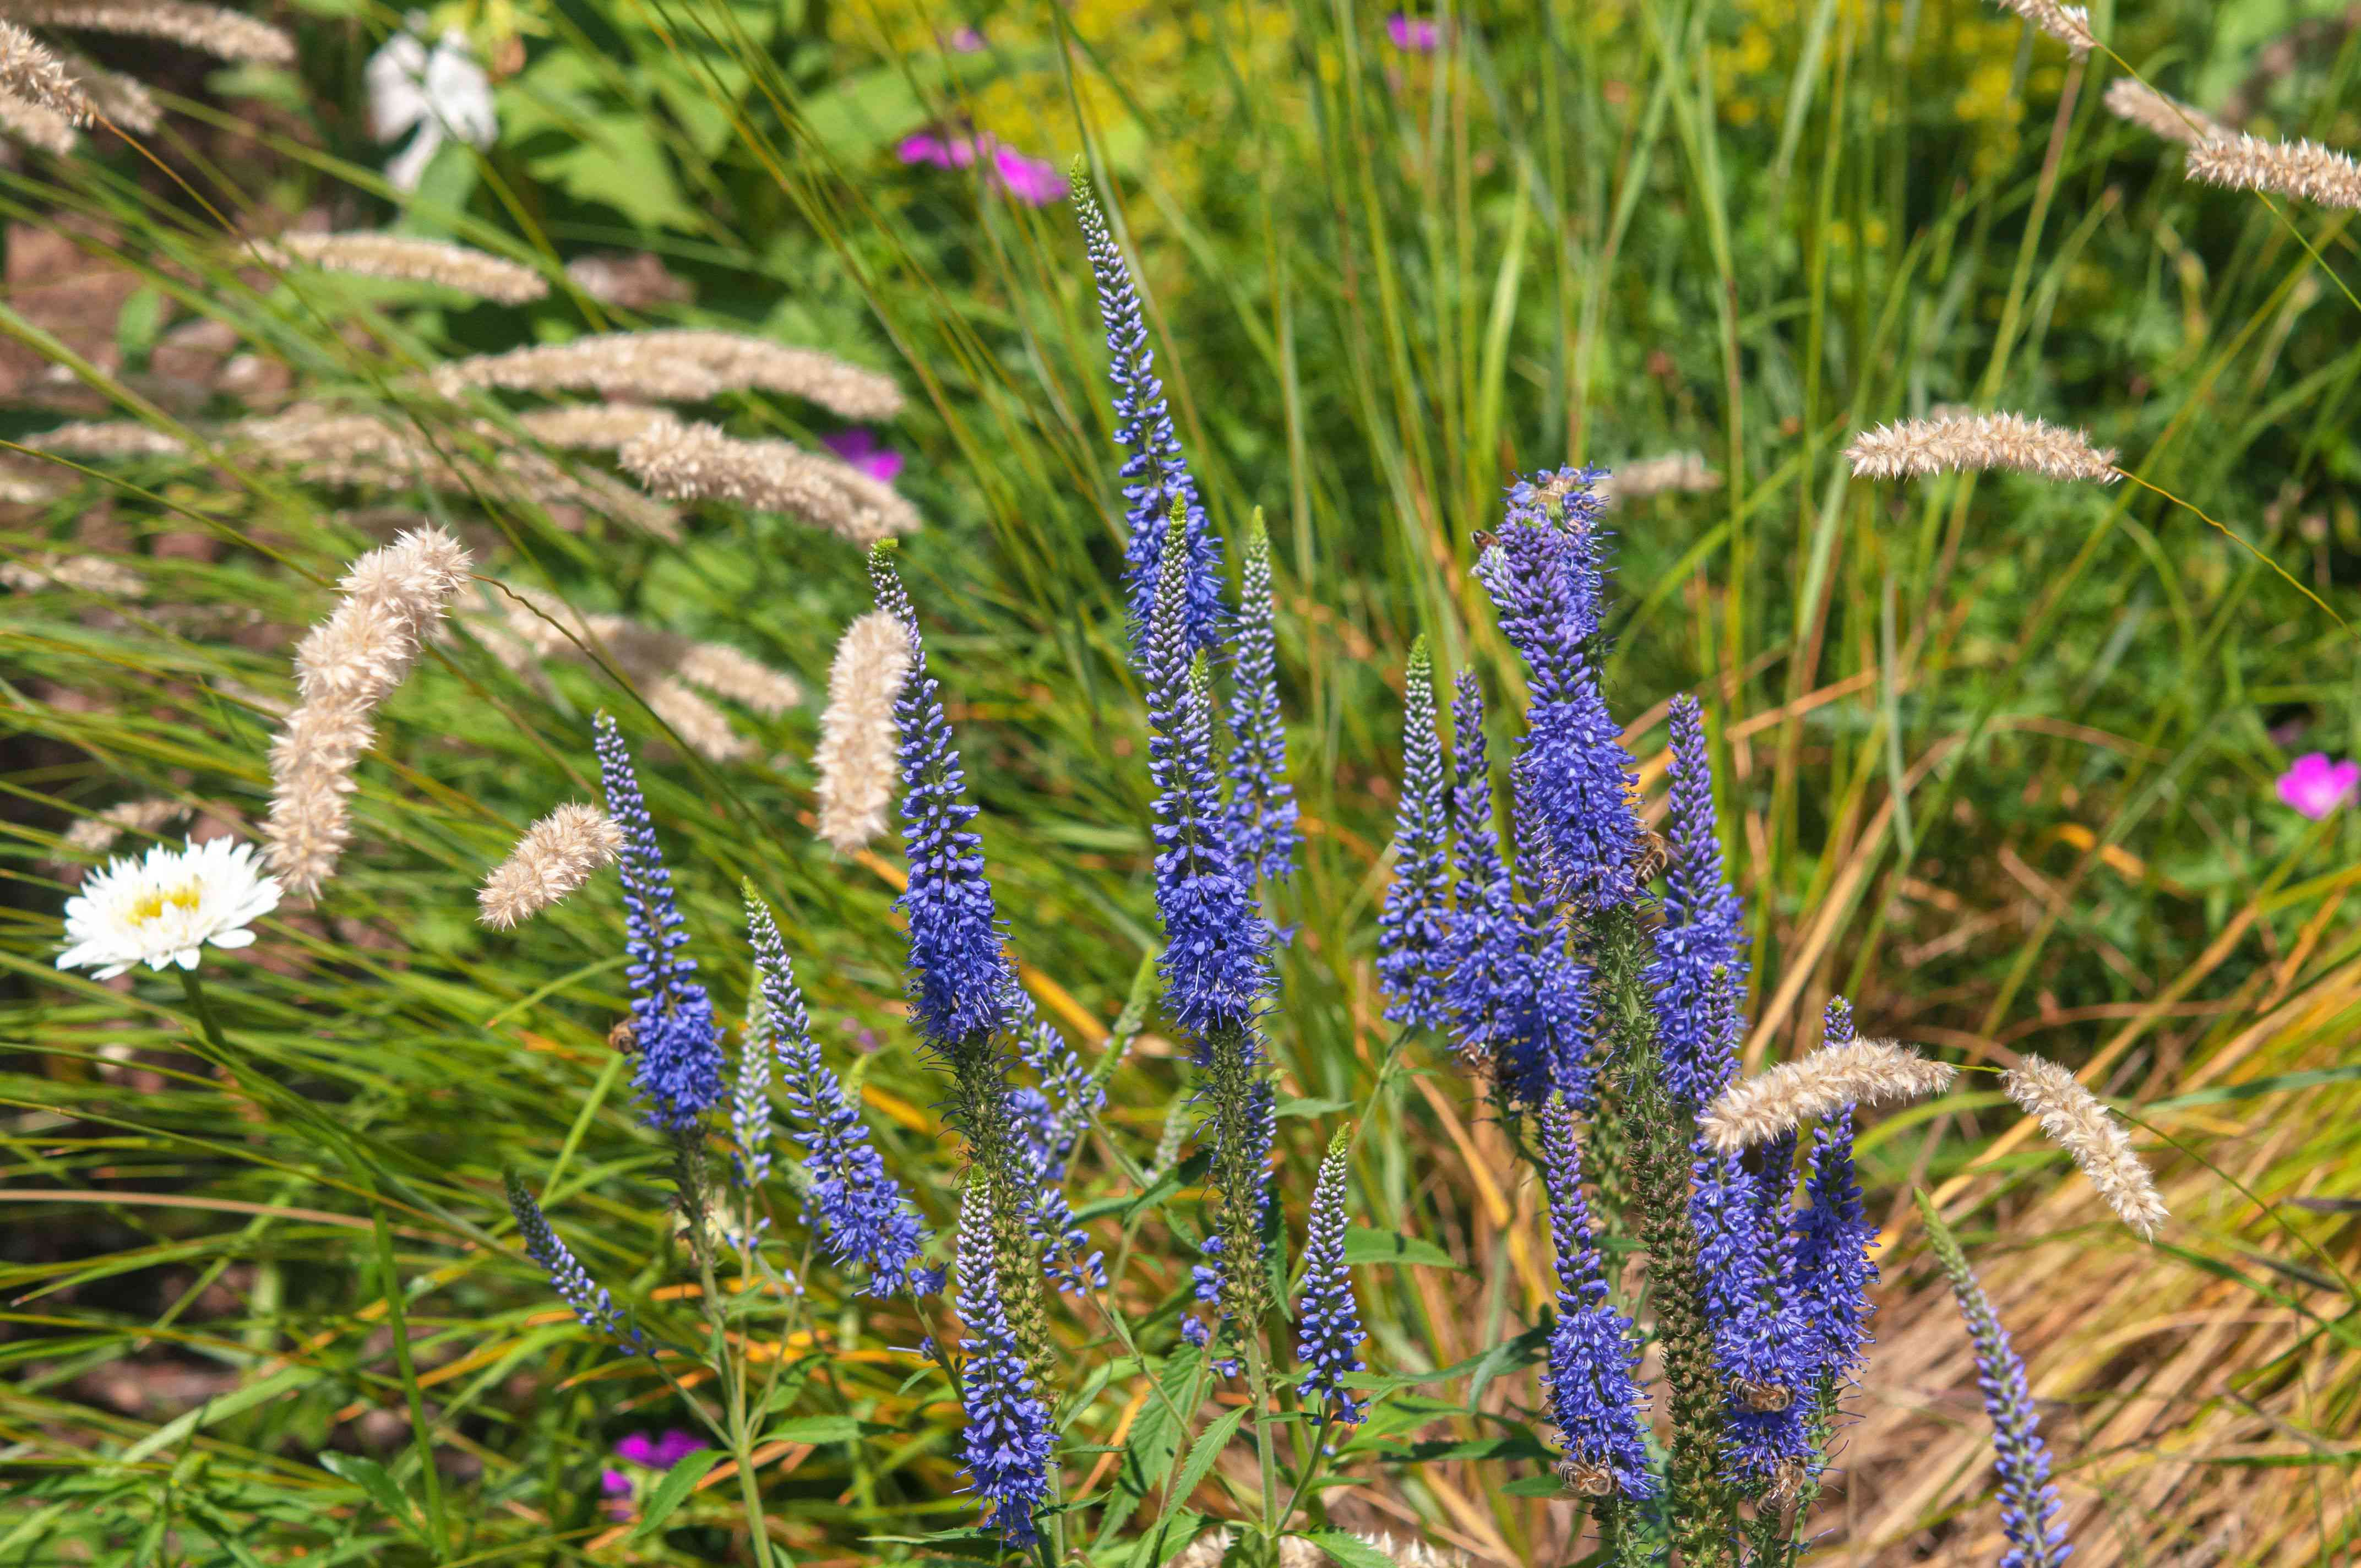 Spiked speedwell plant with purple-blue flower spikes surrounded by tall grasses